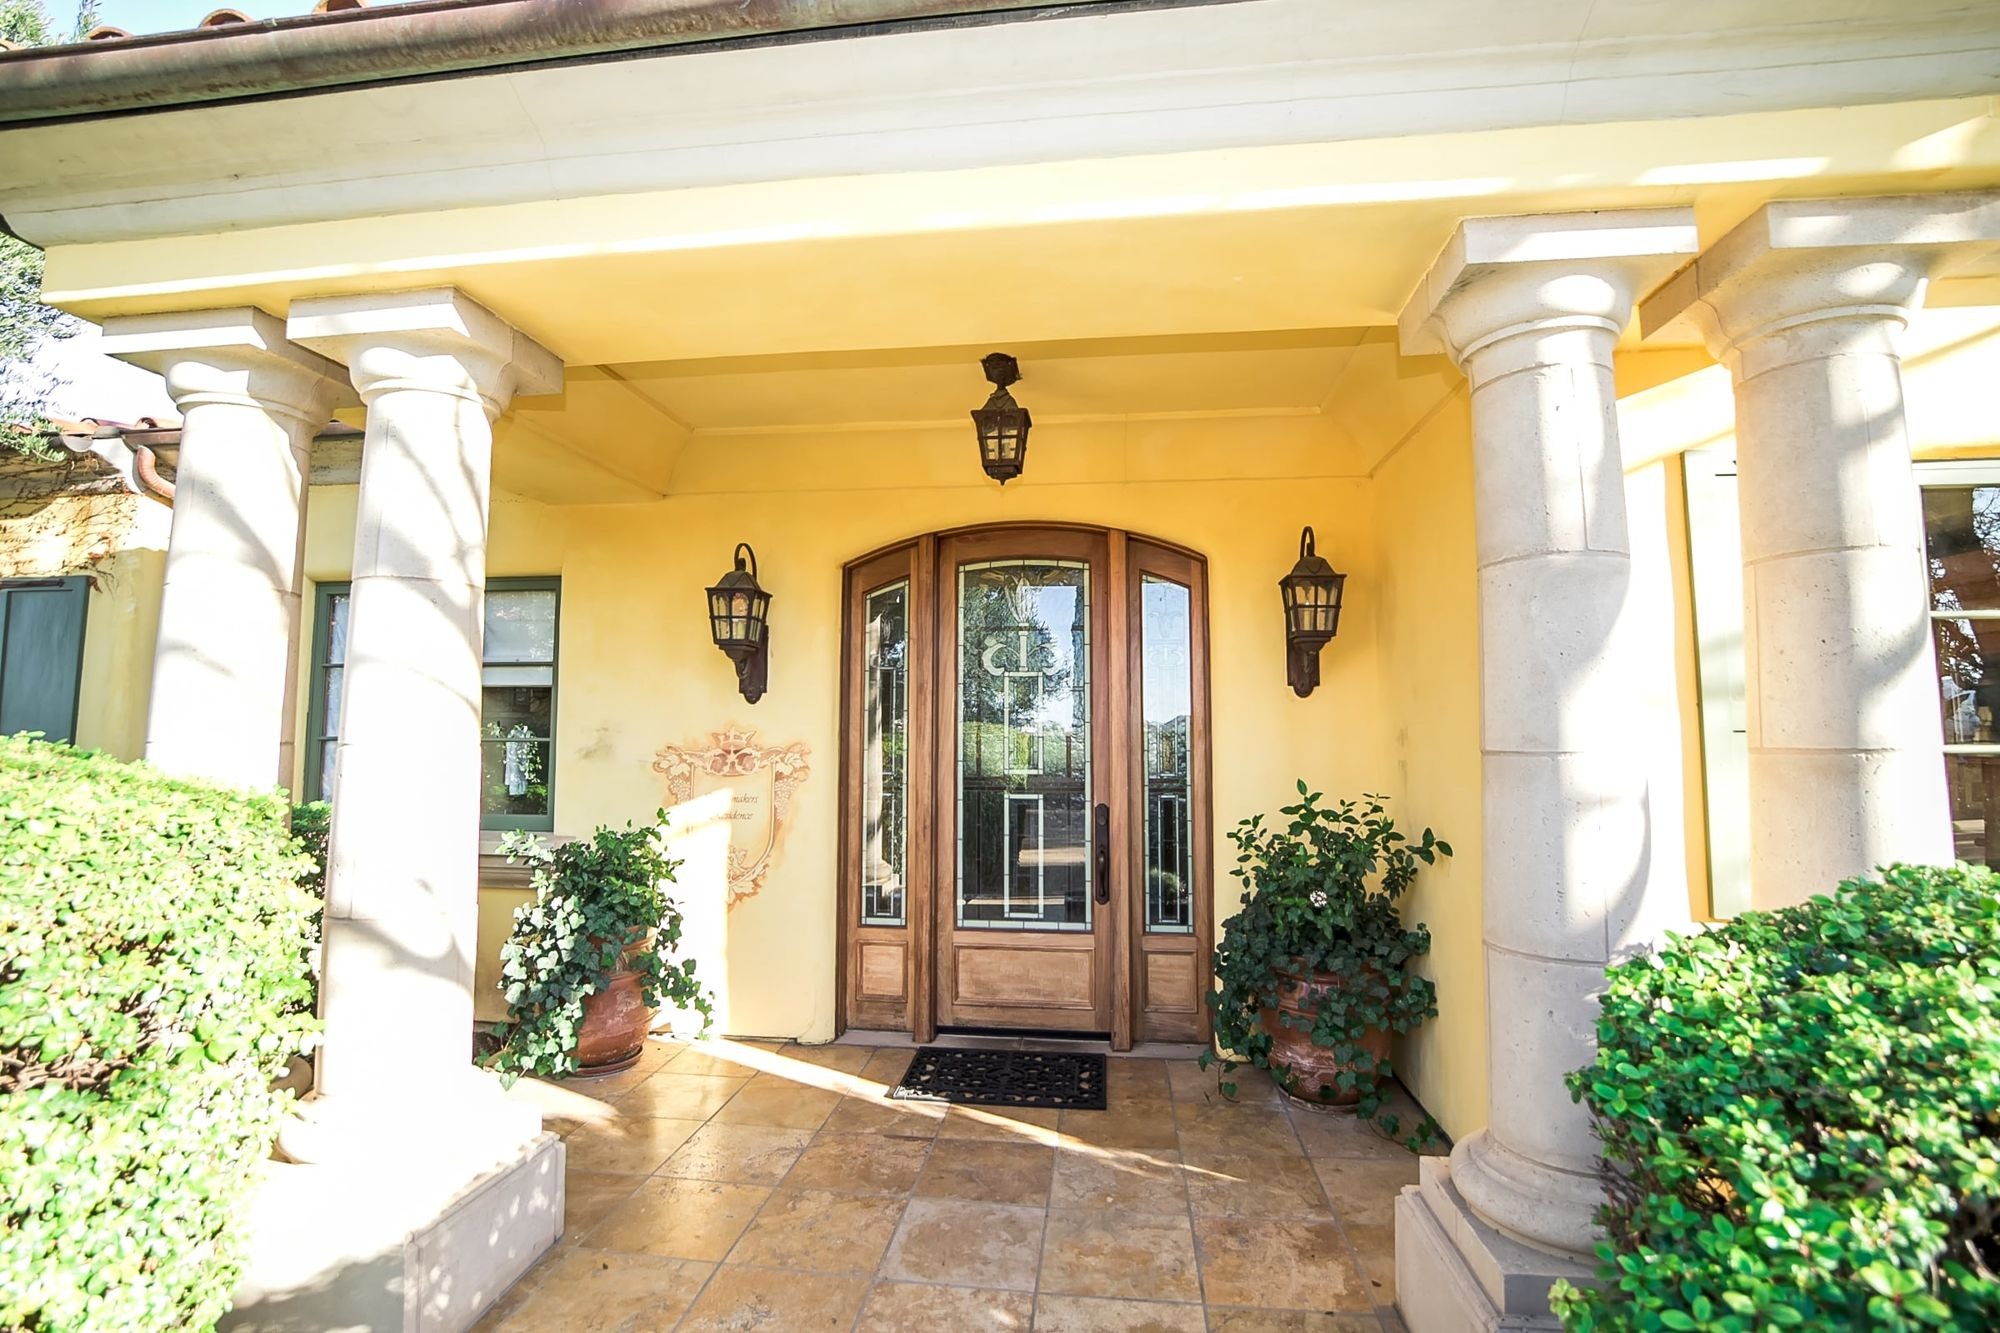 Front door with lighting and columns on either side